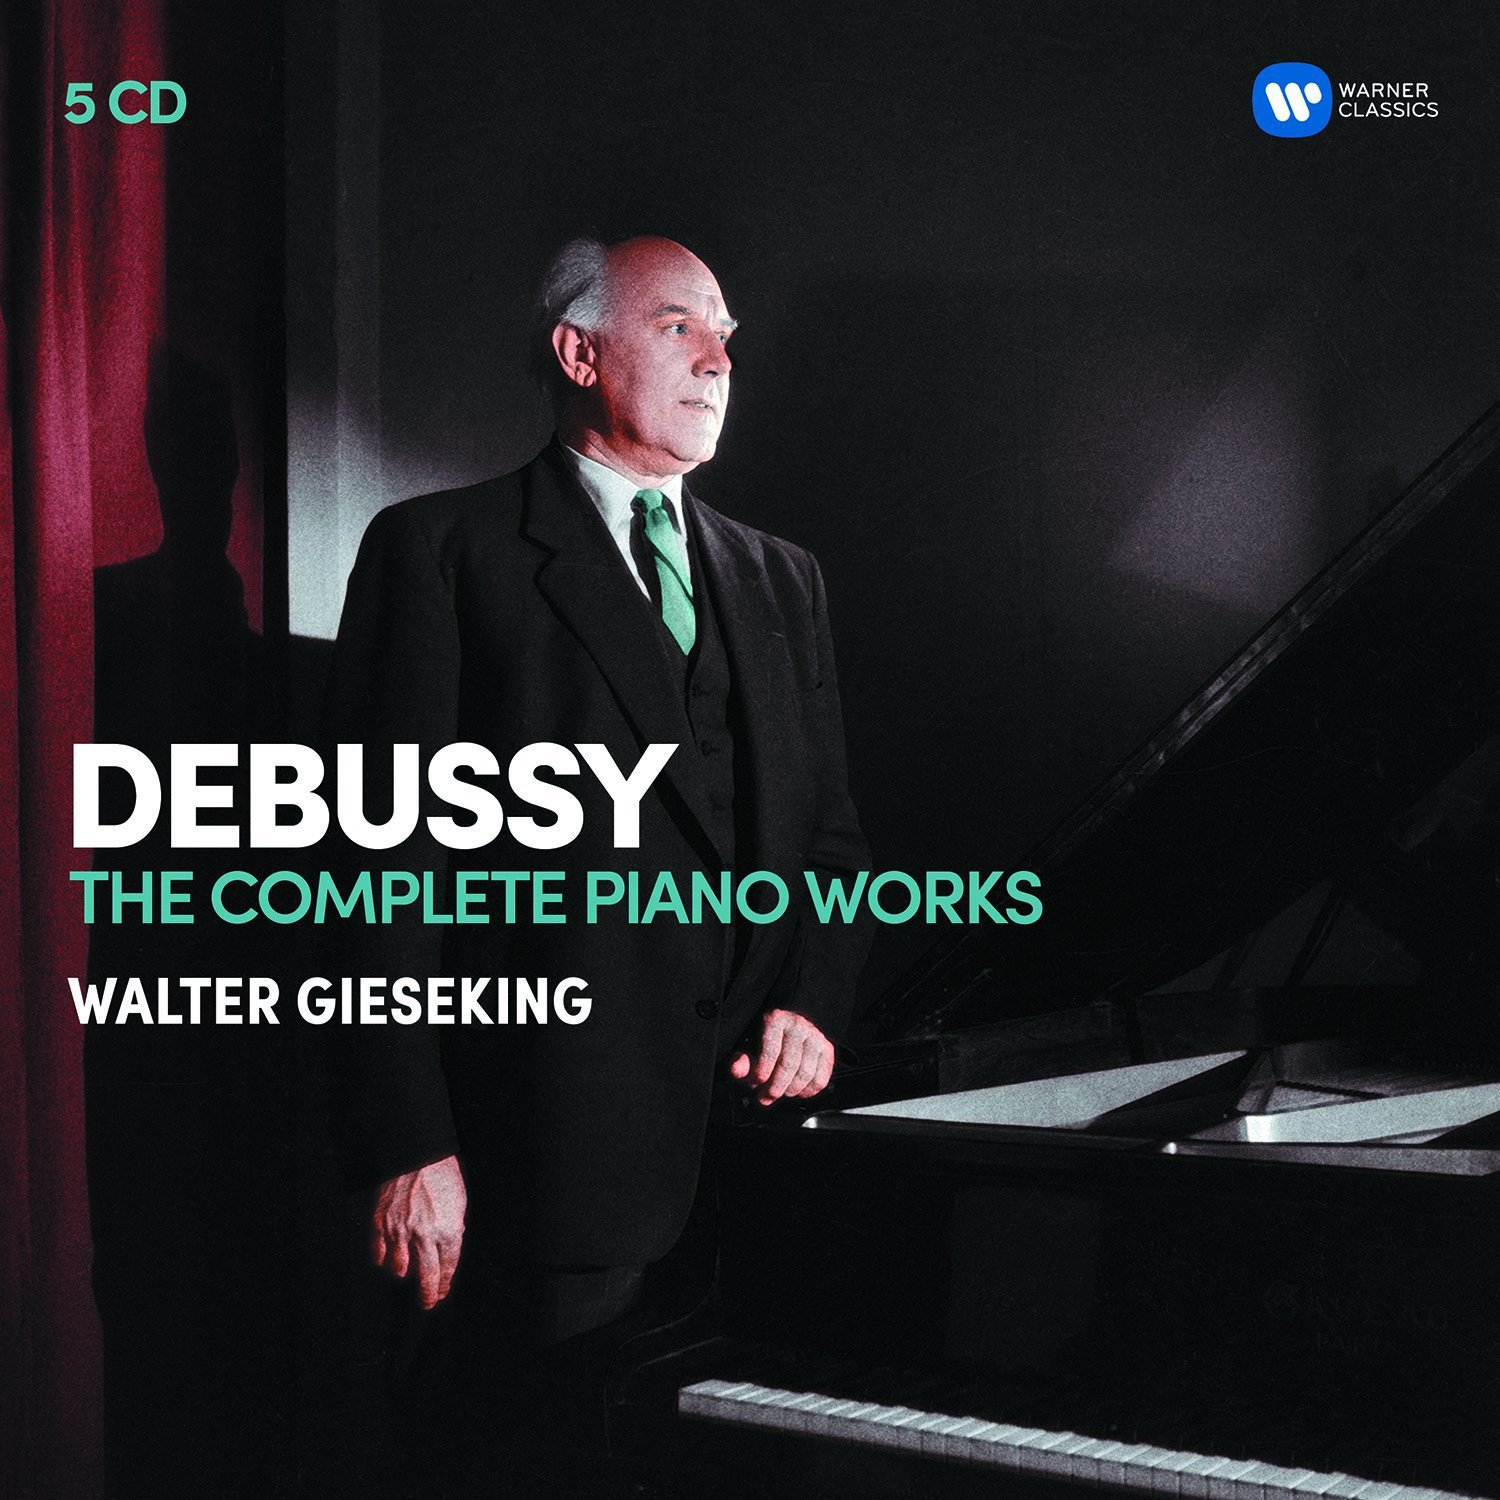 Debussy: The Complete Piano works (5CD) by Warner Bros.